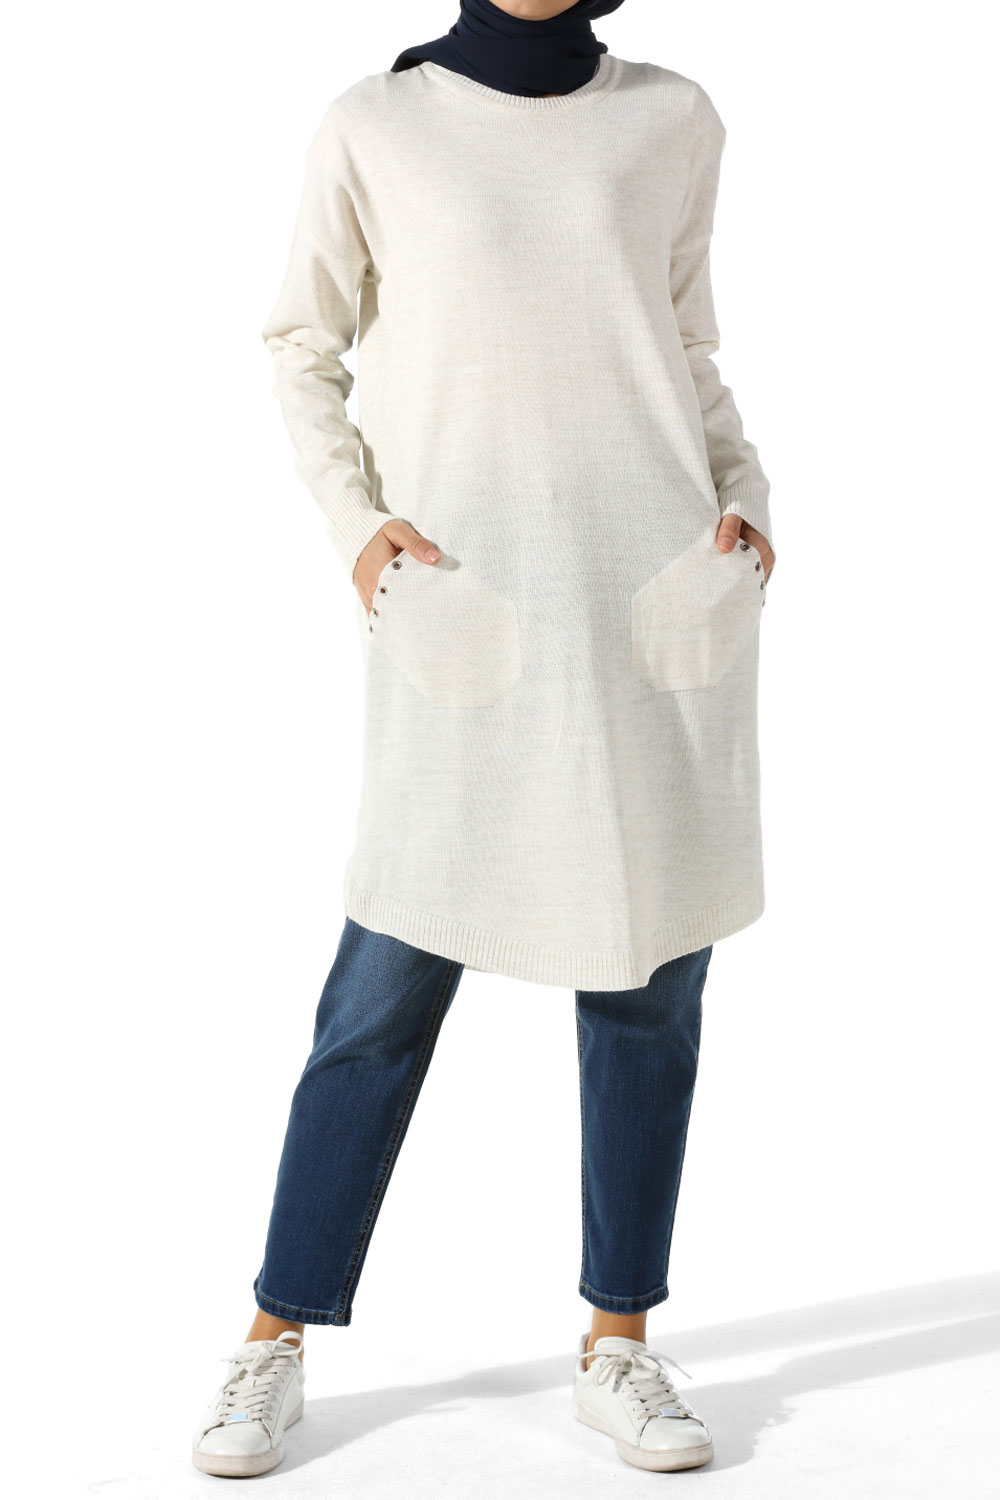 KNITWEAR TUNIC WITH EYELET DETAIL